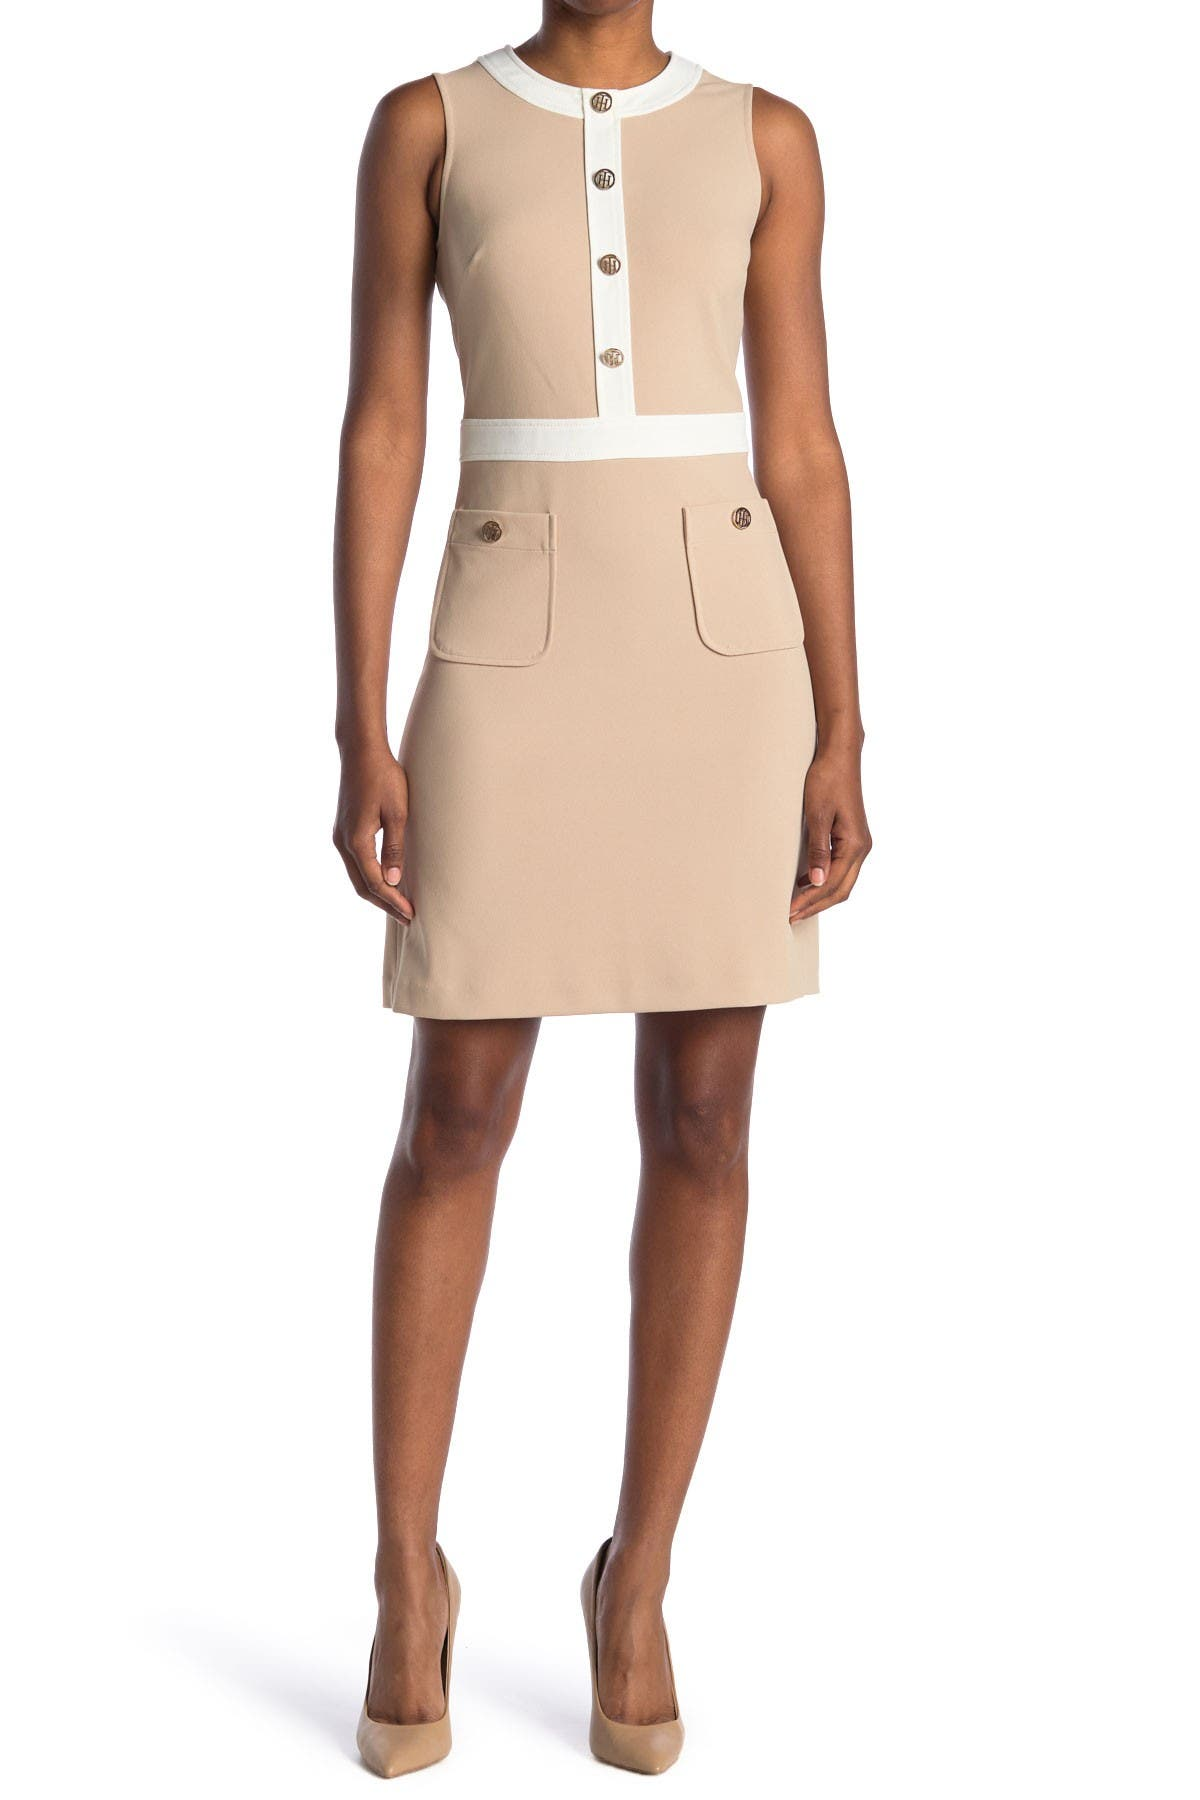 Image of Tommy Hilfiger Sleeveless Scuba A-Line Dress